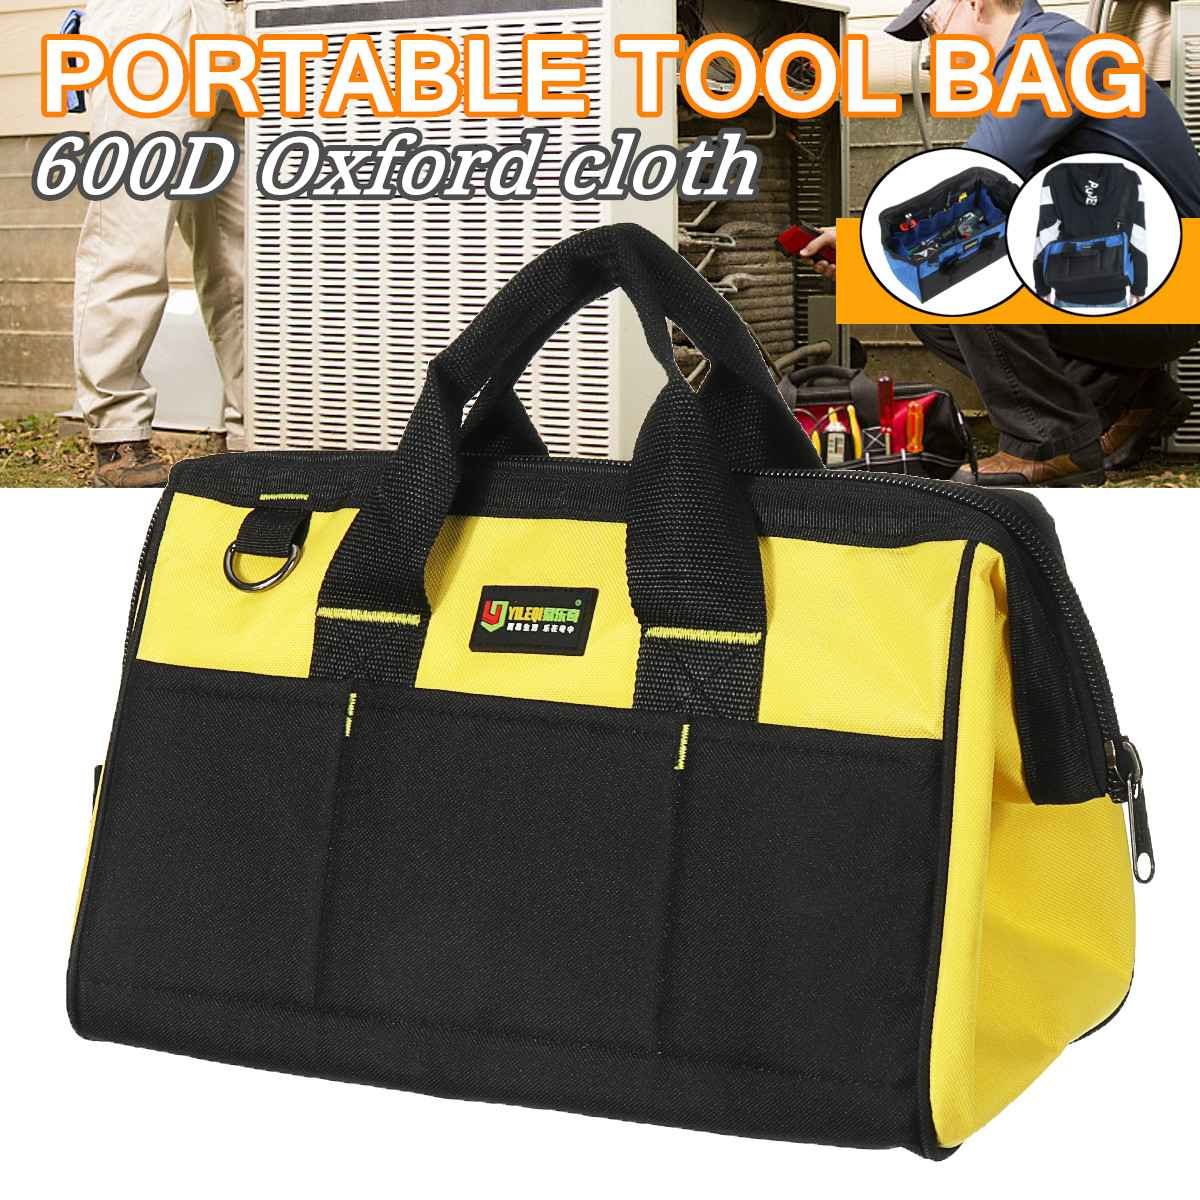 Chisel Toolkit-Instrument Case Pocket-Pouch Tool Waterproof Pouch Screwdrivers-Pliers Parts-Organizer Case Drill-Bit Pouch Bags